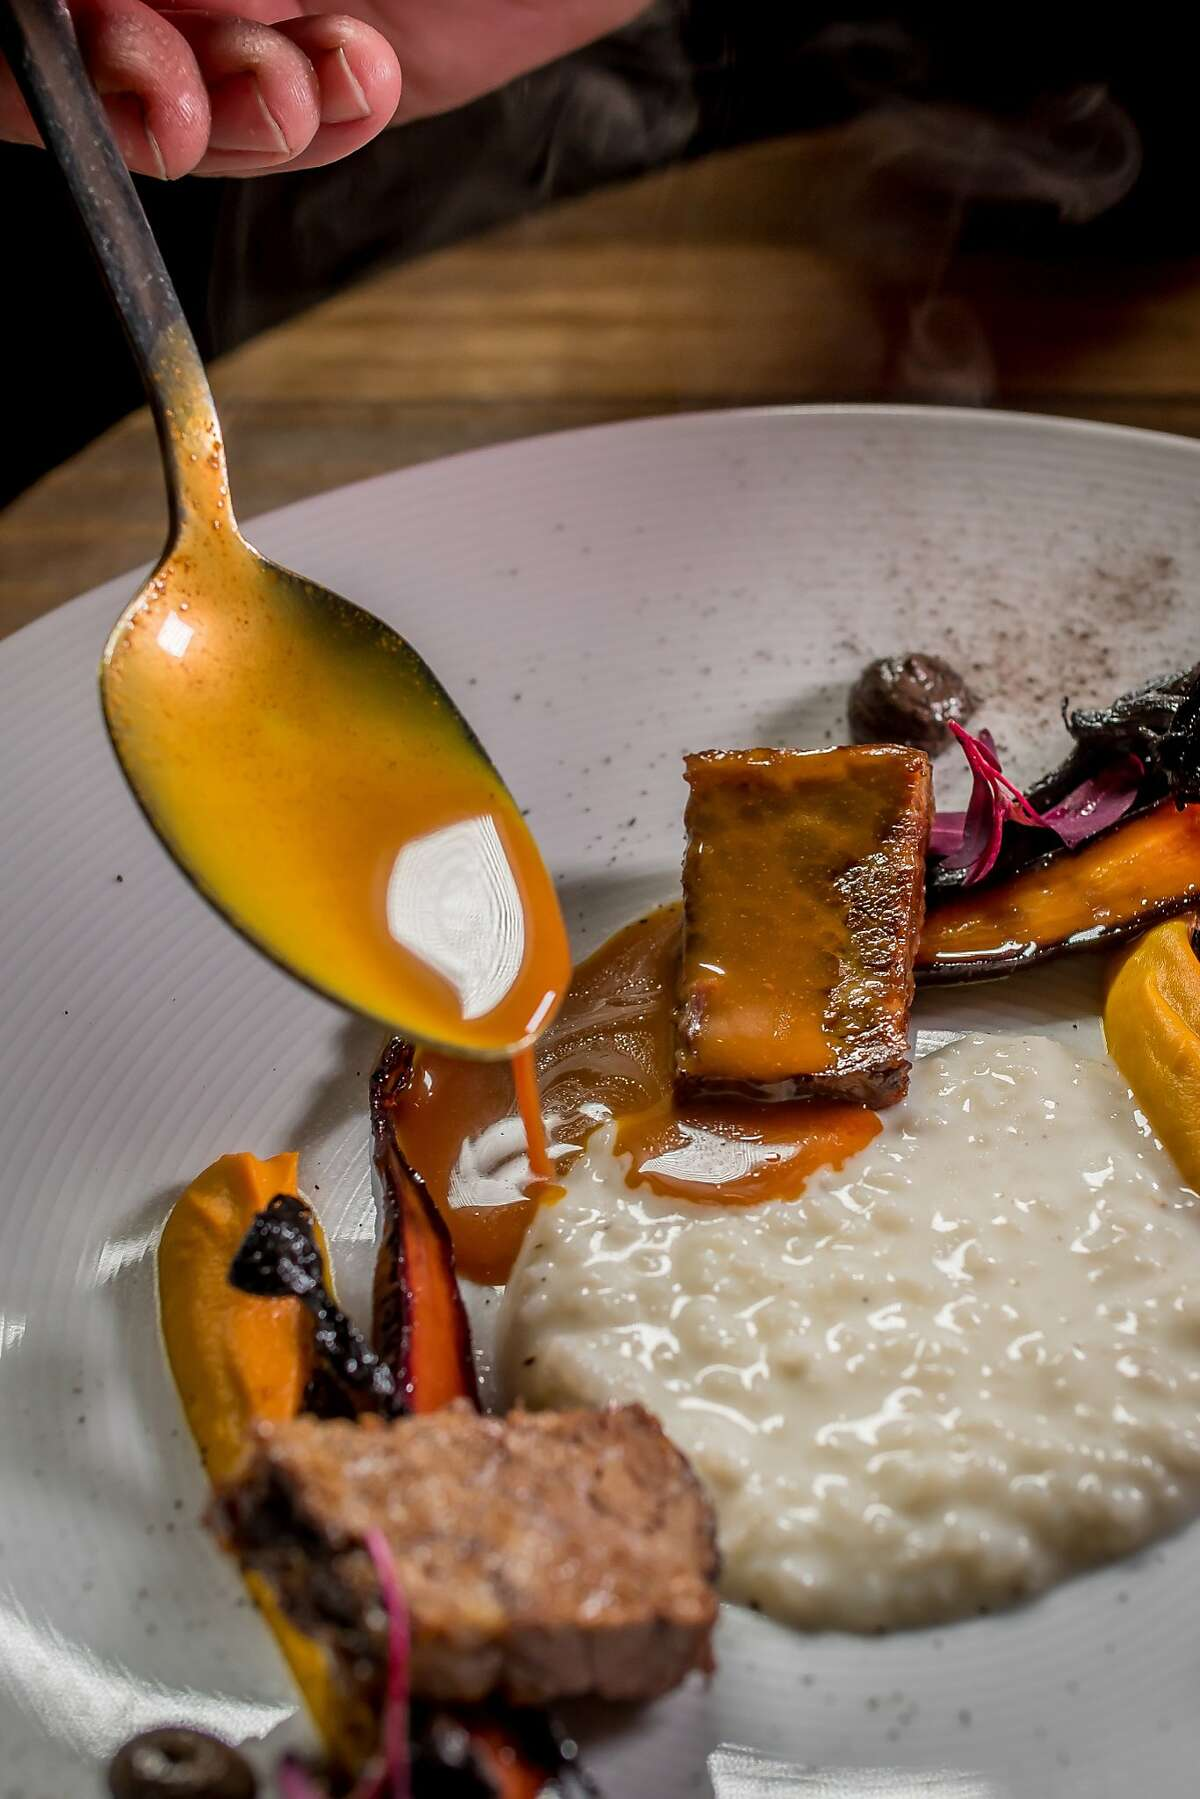 The Beef Short Rib course being sauced at Lazy Bear in San Francisco, Calif. on December 13th, 2014.